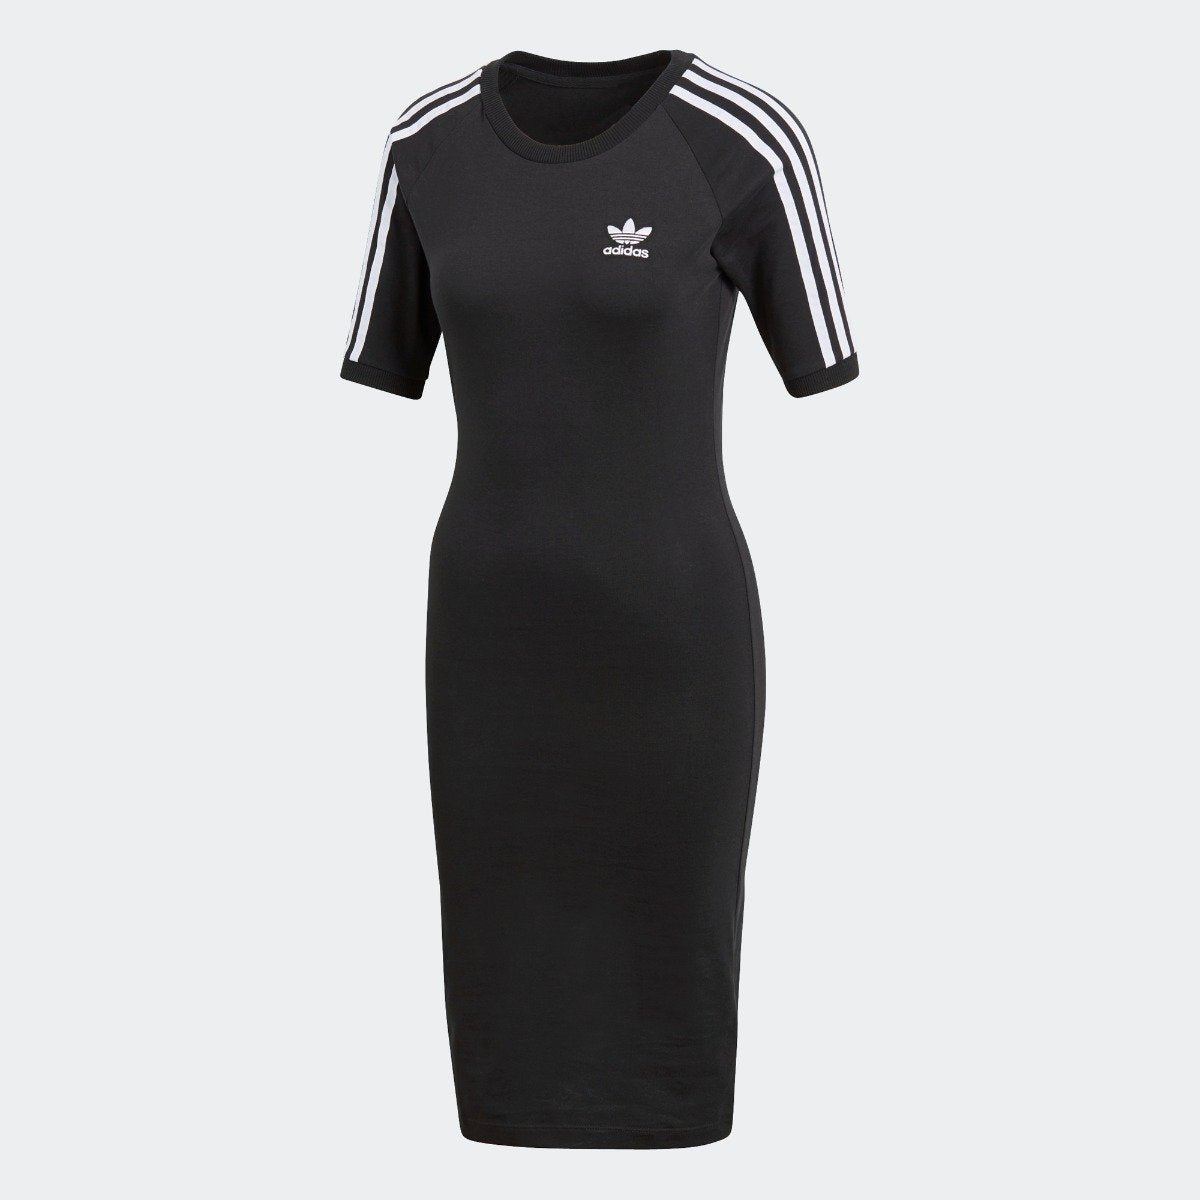 13d7c0da669 adidas 3-Stripes Dress Black CY4748 | Chicago City Sports